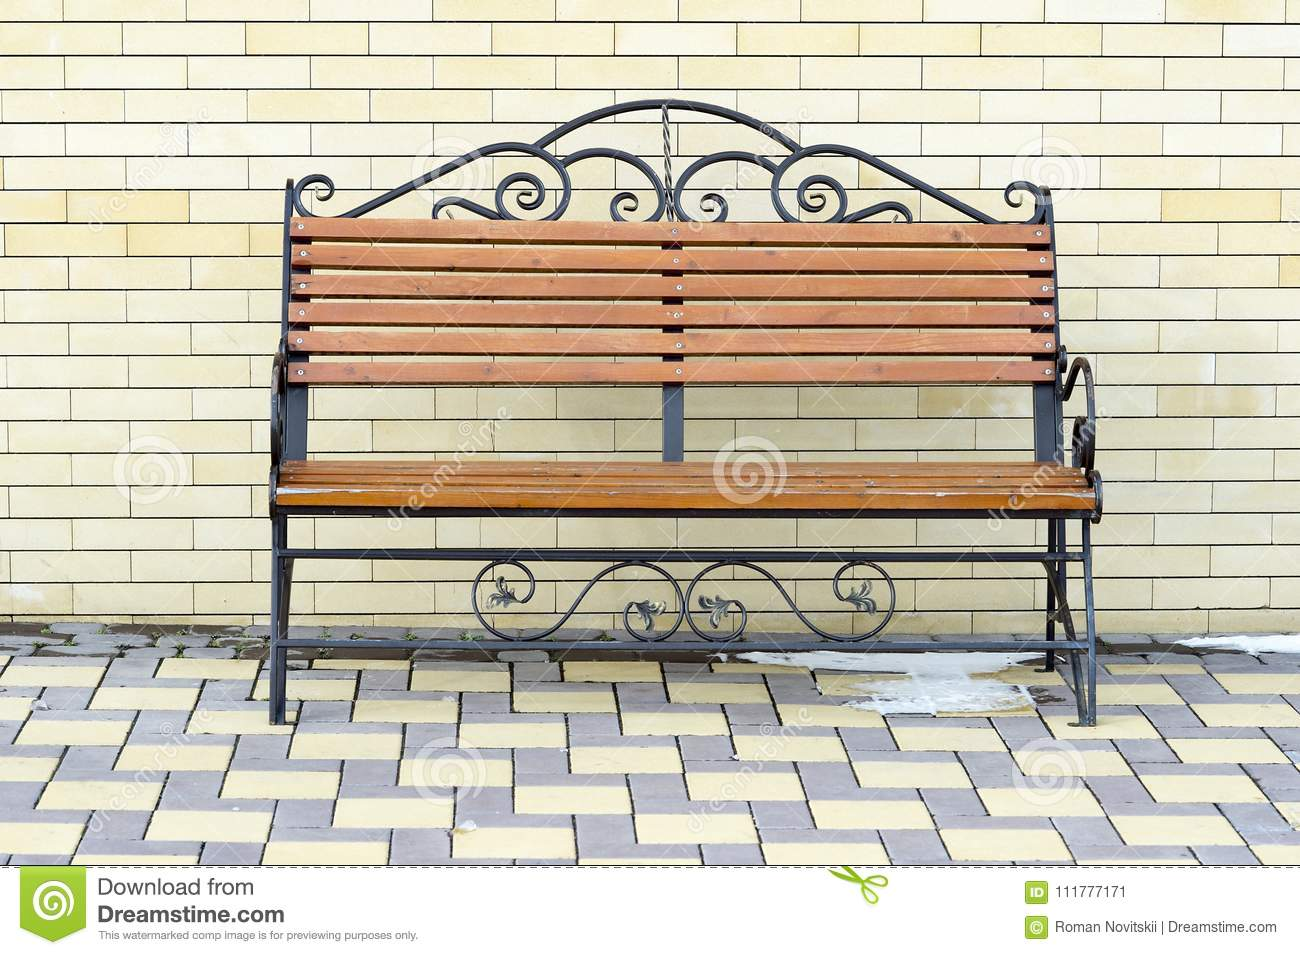 Brown Park bench against the wall of a light yellow brick.